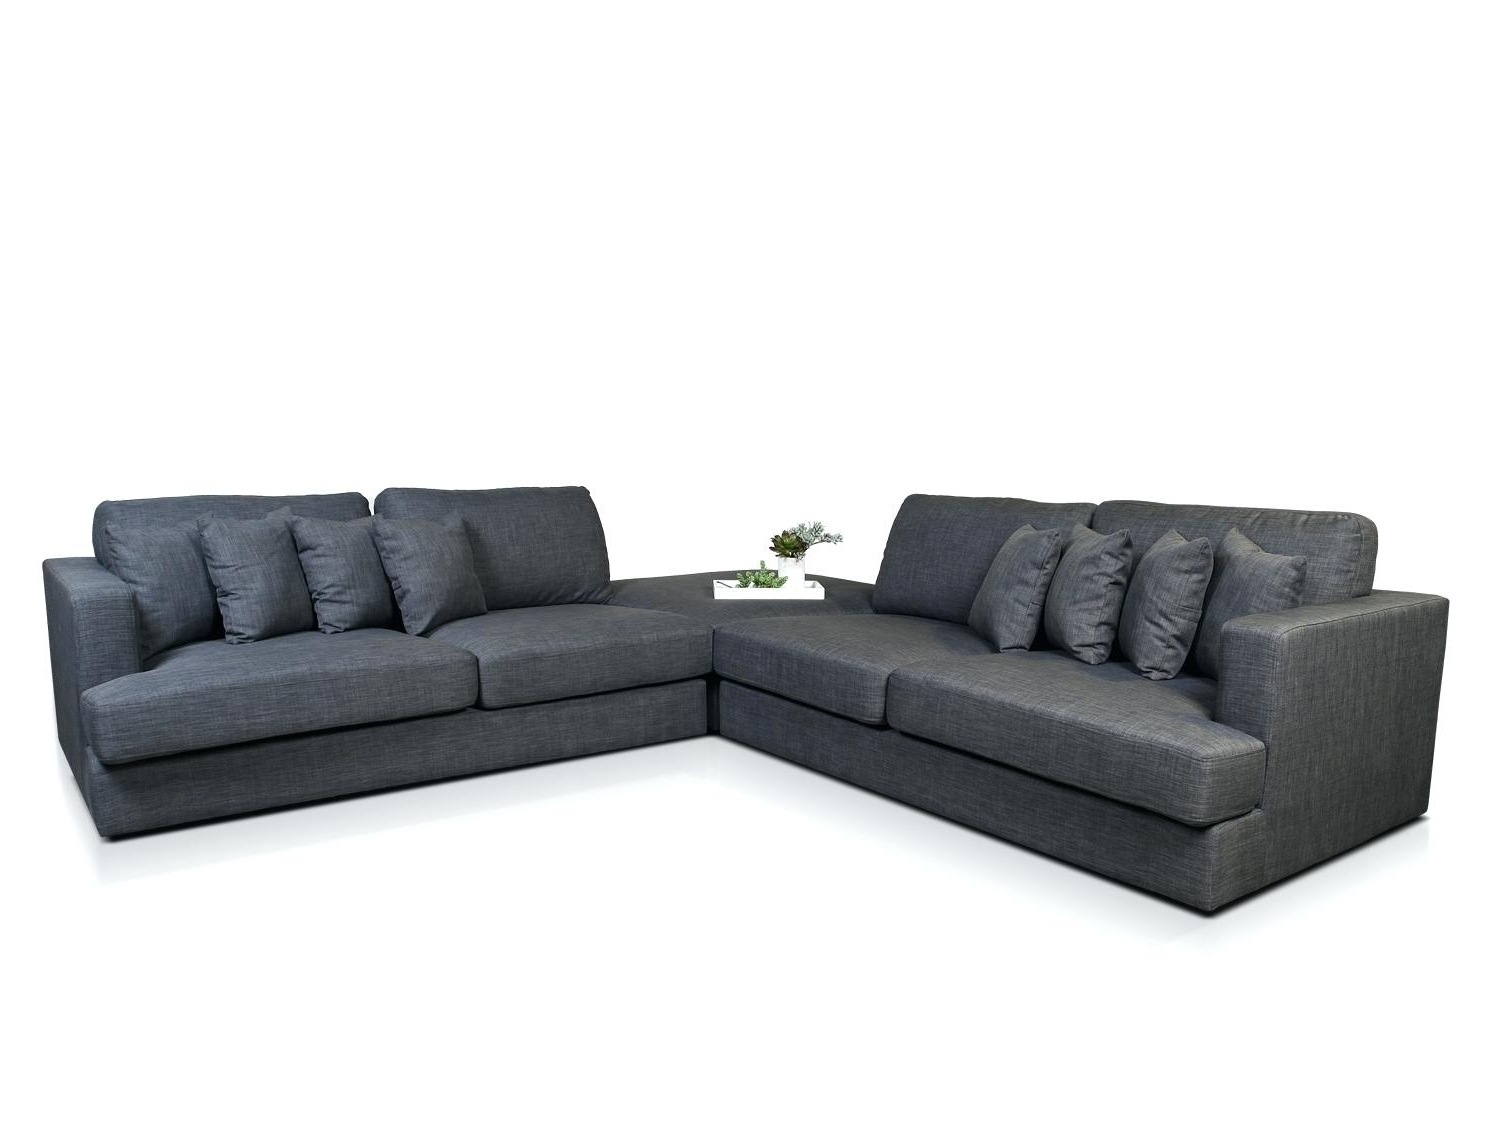 Small Modular Sofas Intended For Famous Modular Sofas Bedroom Furniture For Small Spaces Uk Used Sofa Sale (View 17 of 20)